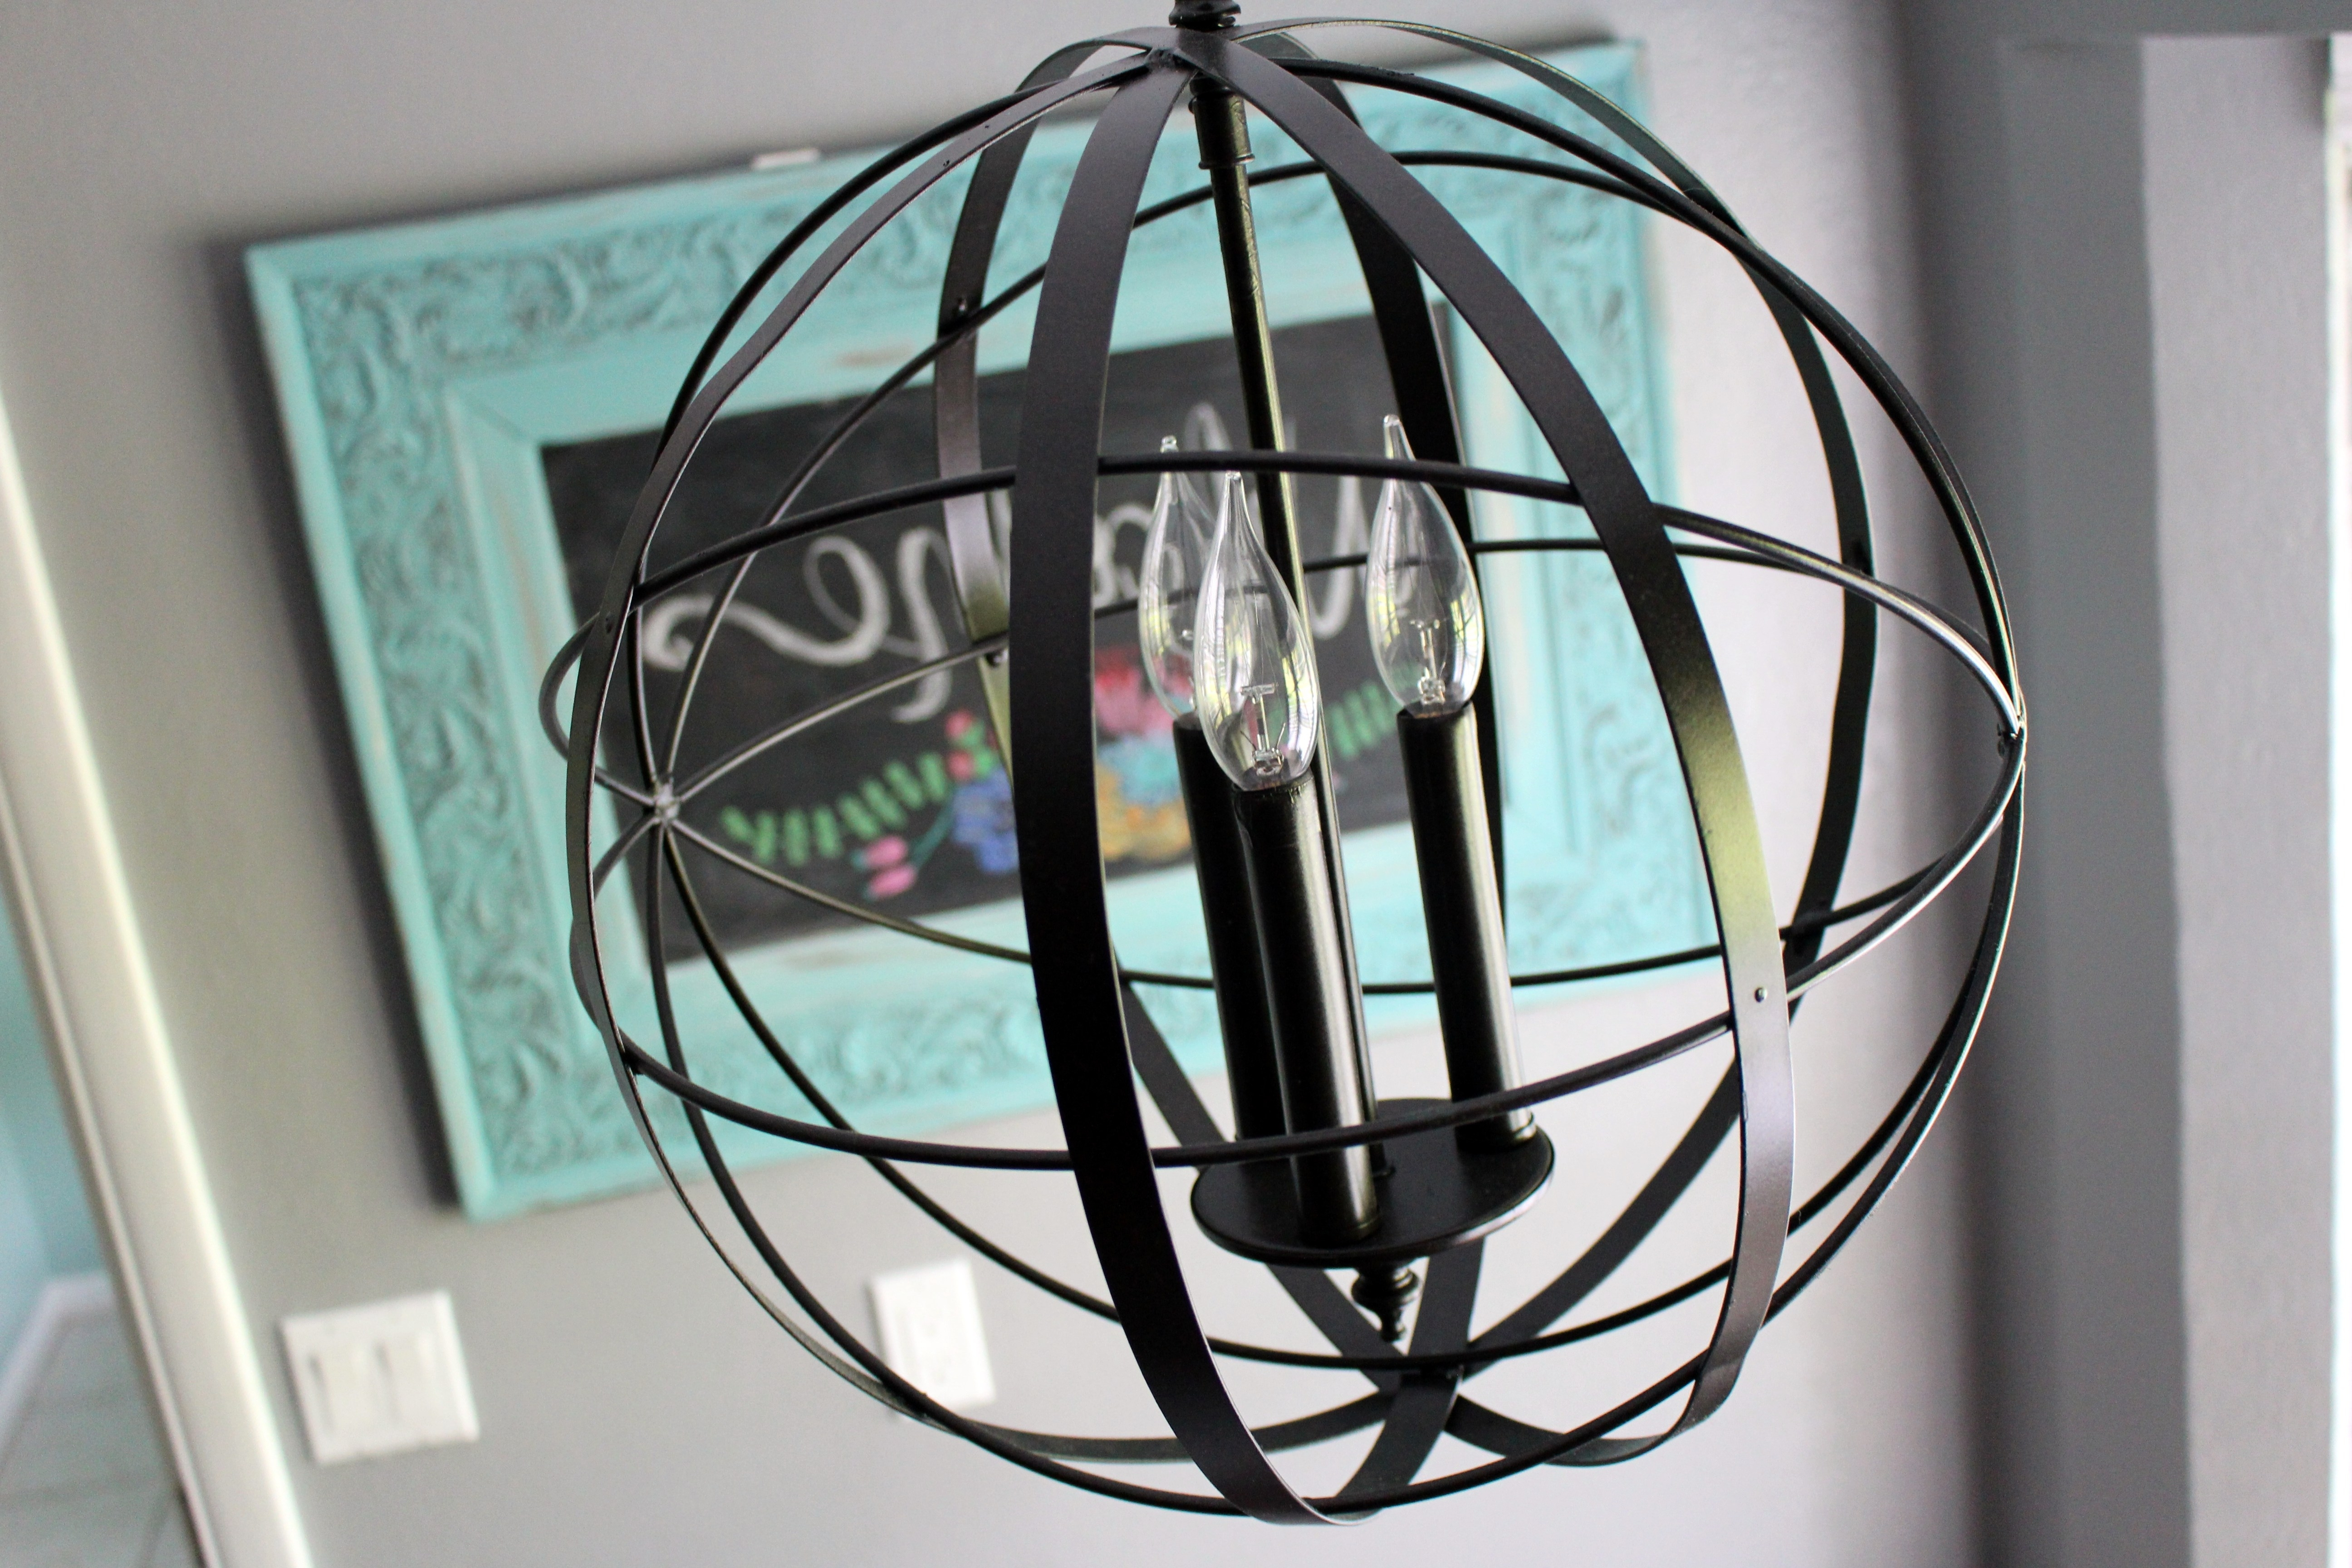 Home Project // Orb Chandelier For Breakfast Nook – Within The Grove With Regard To Well Known Turquoise Orb Chandeliers (View 4 of 20)